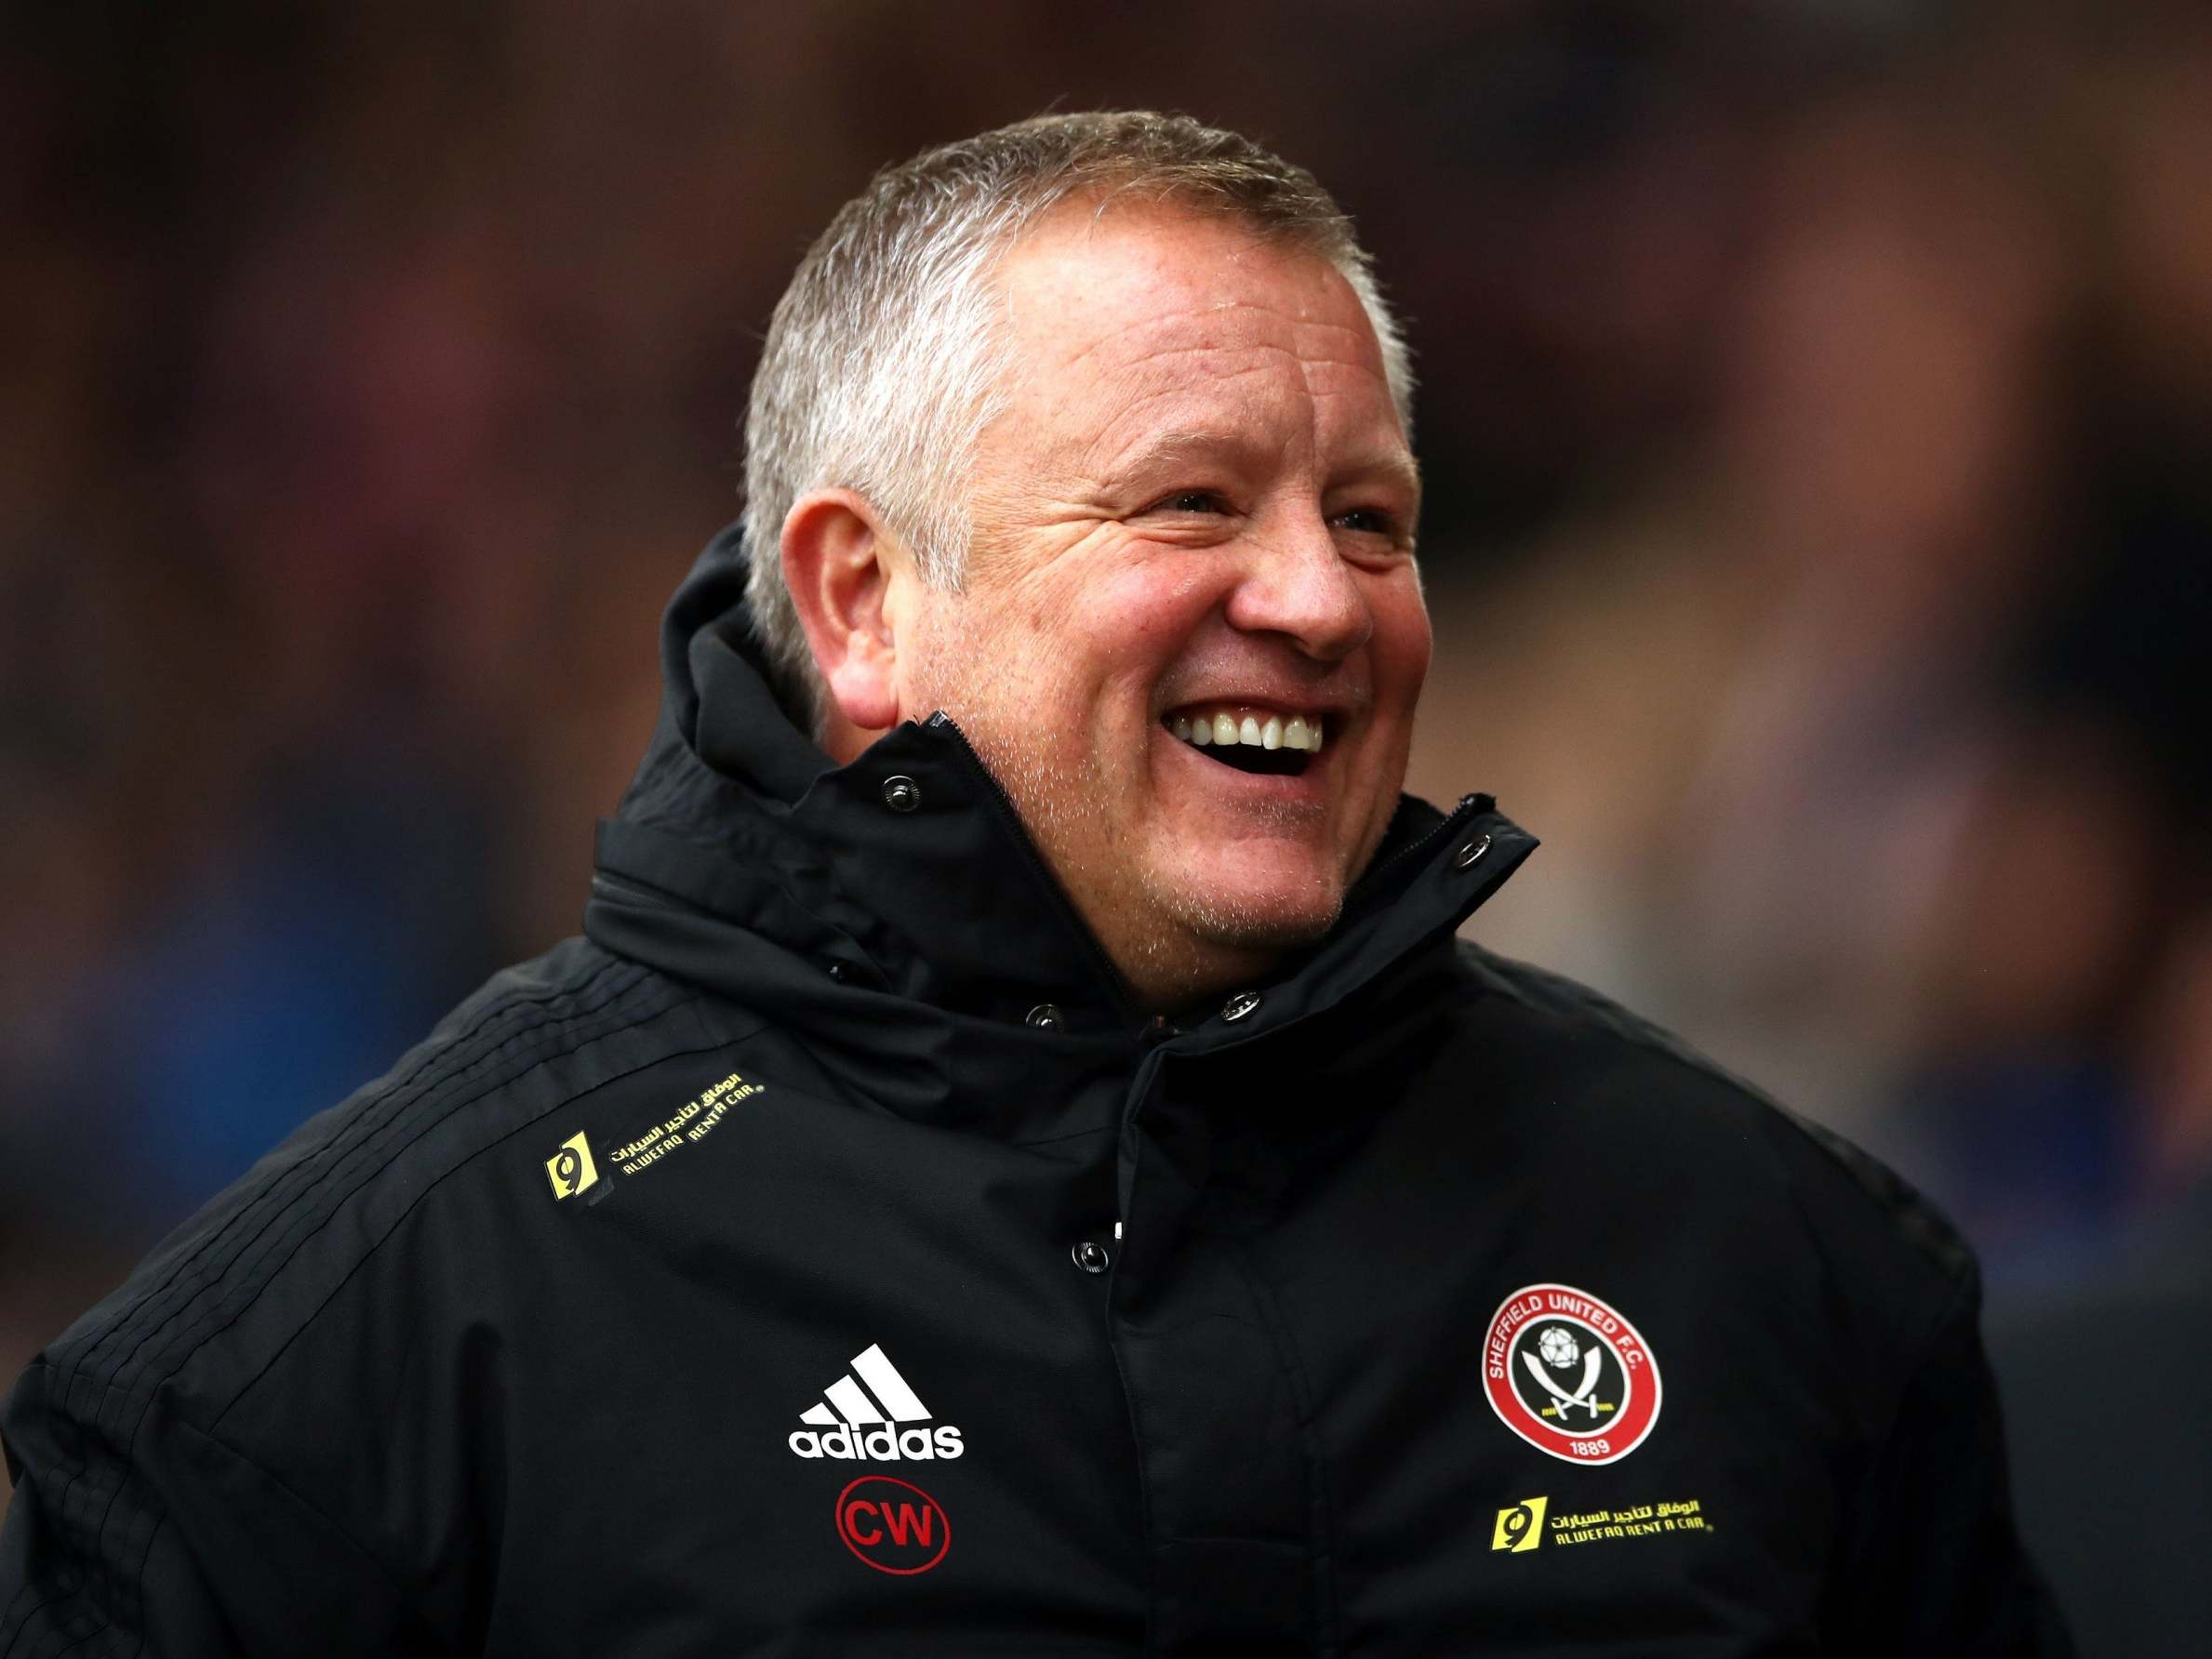 Chris Wilder: Contact training 'has to come as quickly as possible'